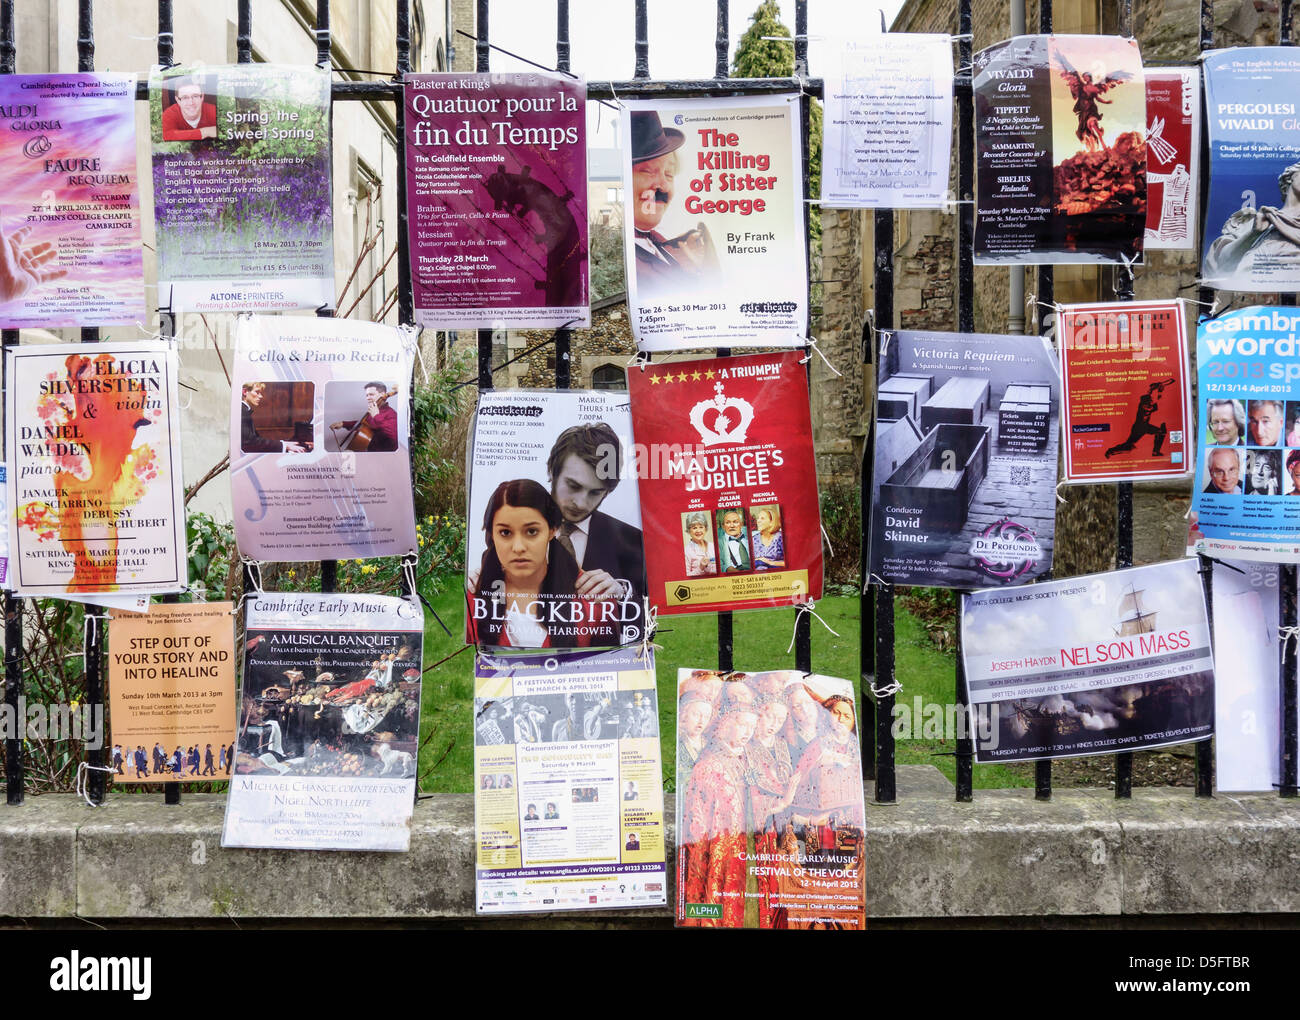 Theatre Event and Show Posters Adverts on Railings Cambridge England - Stock Image